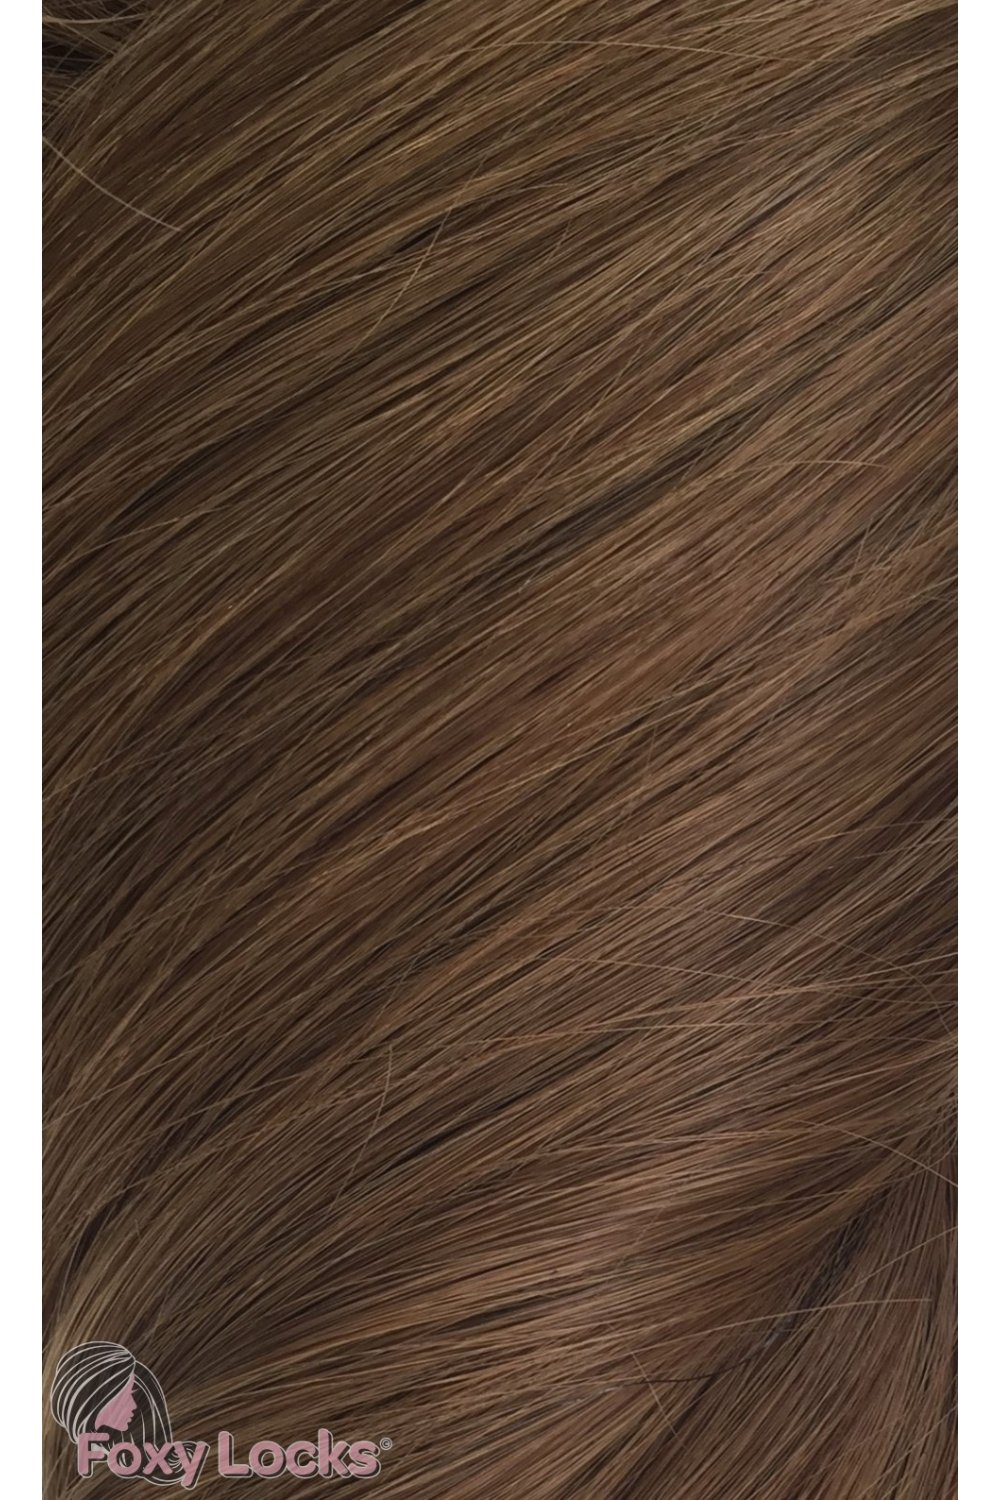 Chestnut brown 6 luxurious 24 clip in human hair extensions 280g chestnut luxurious 24 clip in human hair extensions pmusecretfo Image collections